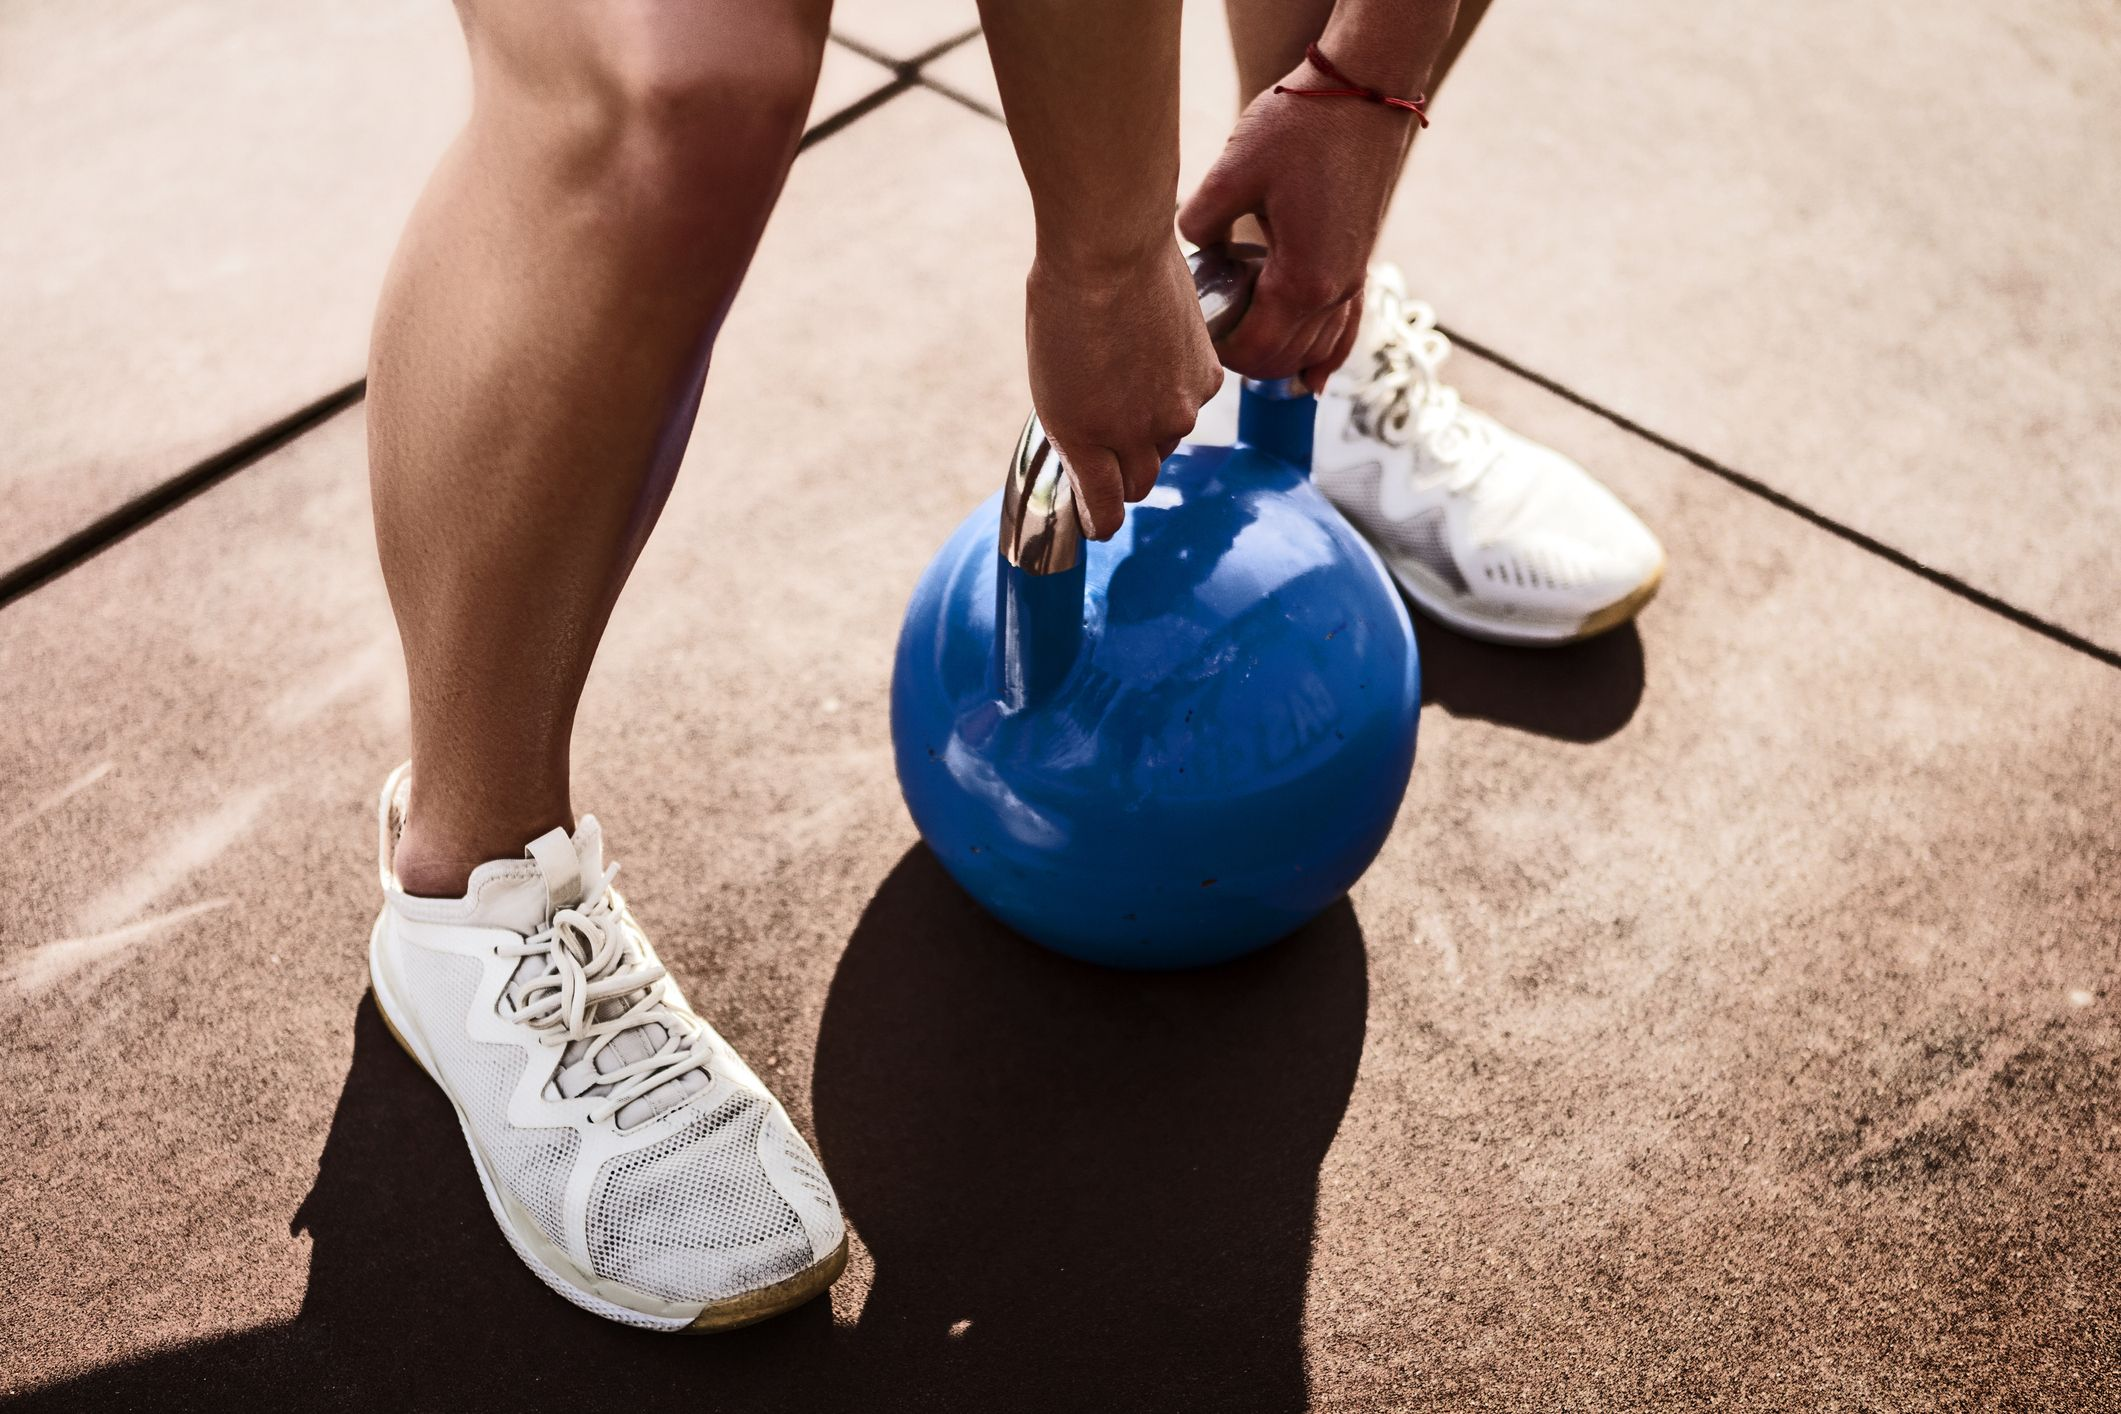 Try these simple kettlebell exercises for a stronger core